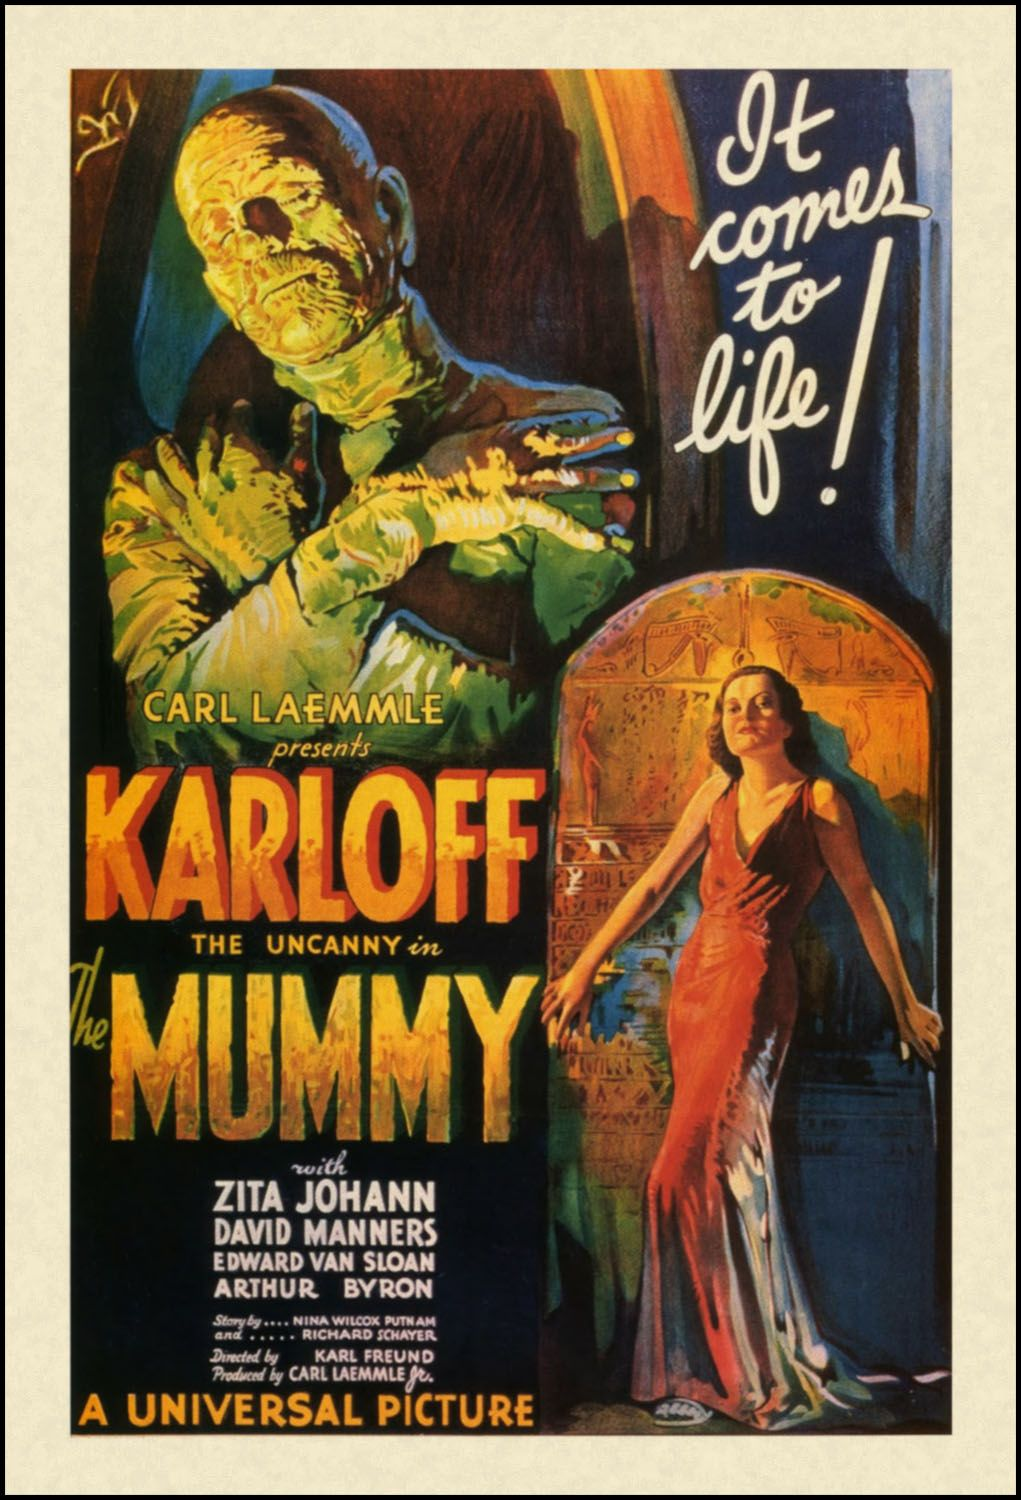 The Pictorial Arts A Great Time Visit Had By All Classic Horror Movies Posters Movie Posters Vintage Old Movie Posters